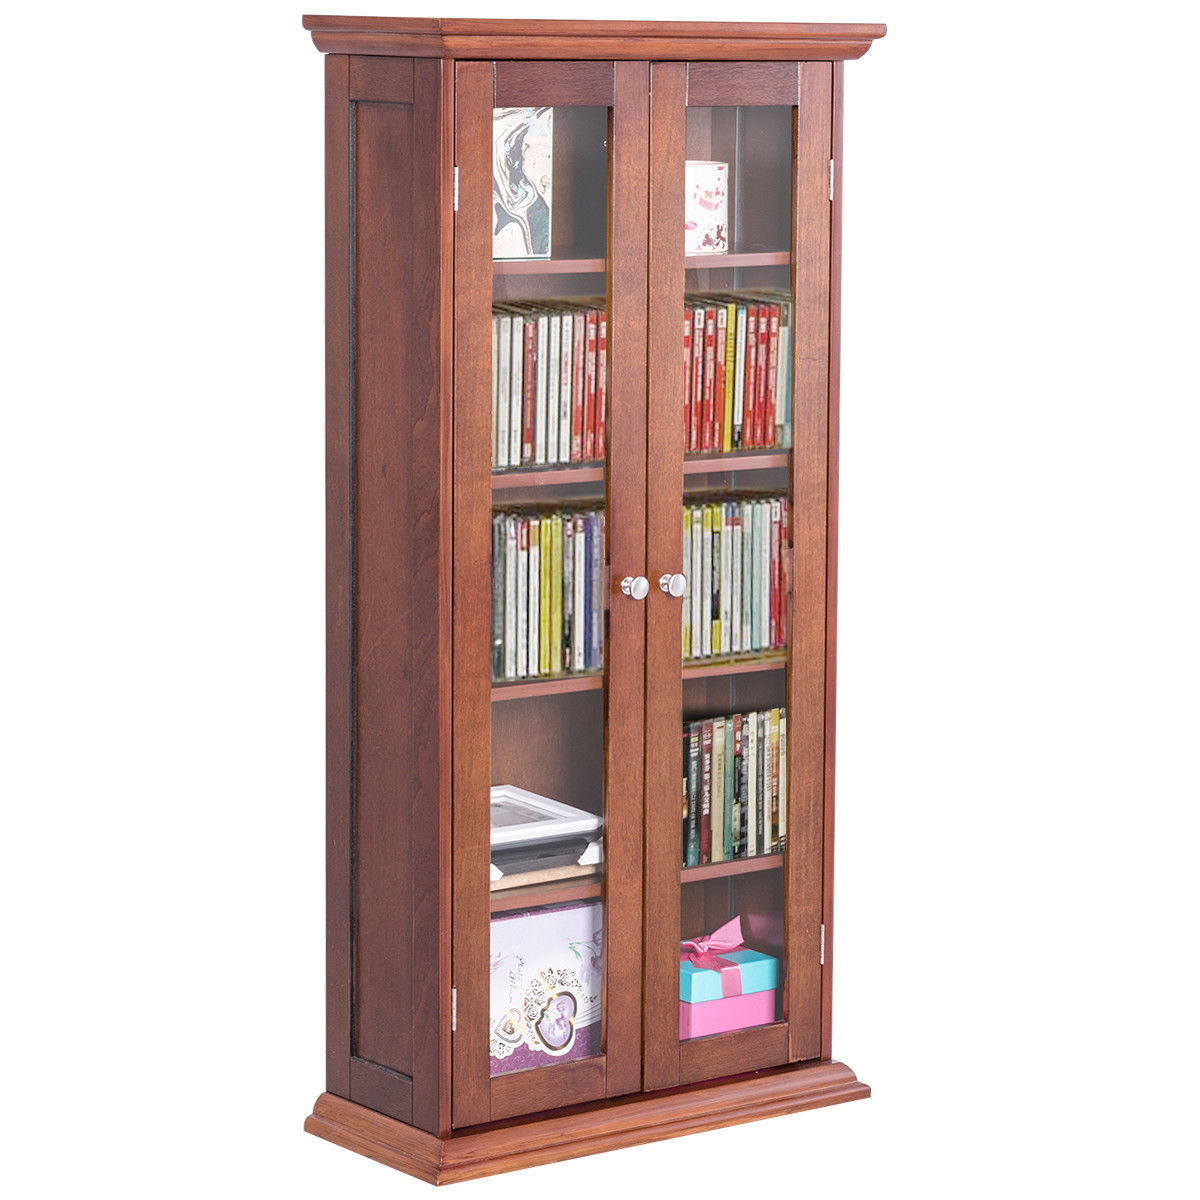 Costway 44.5'' Wood Media Storage Cabinet CD DVD Shelves Tower Glass Doors Walnut